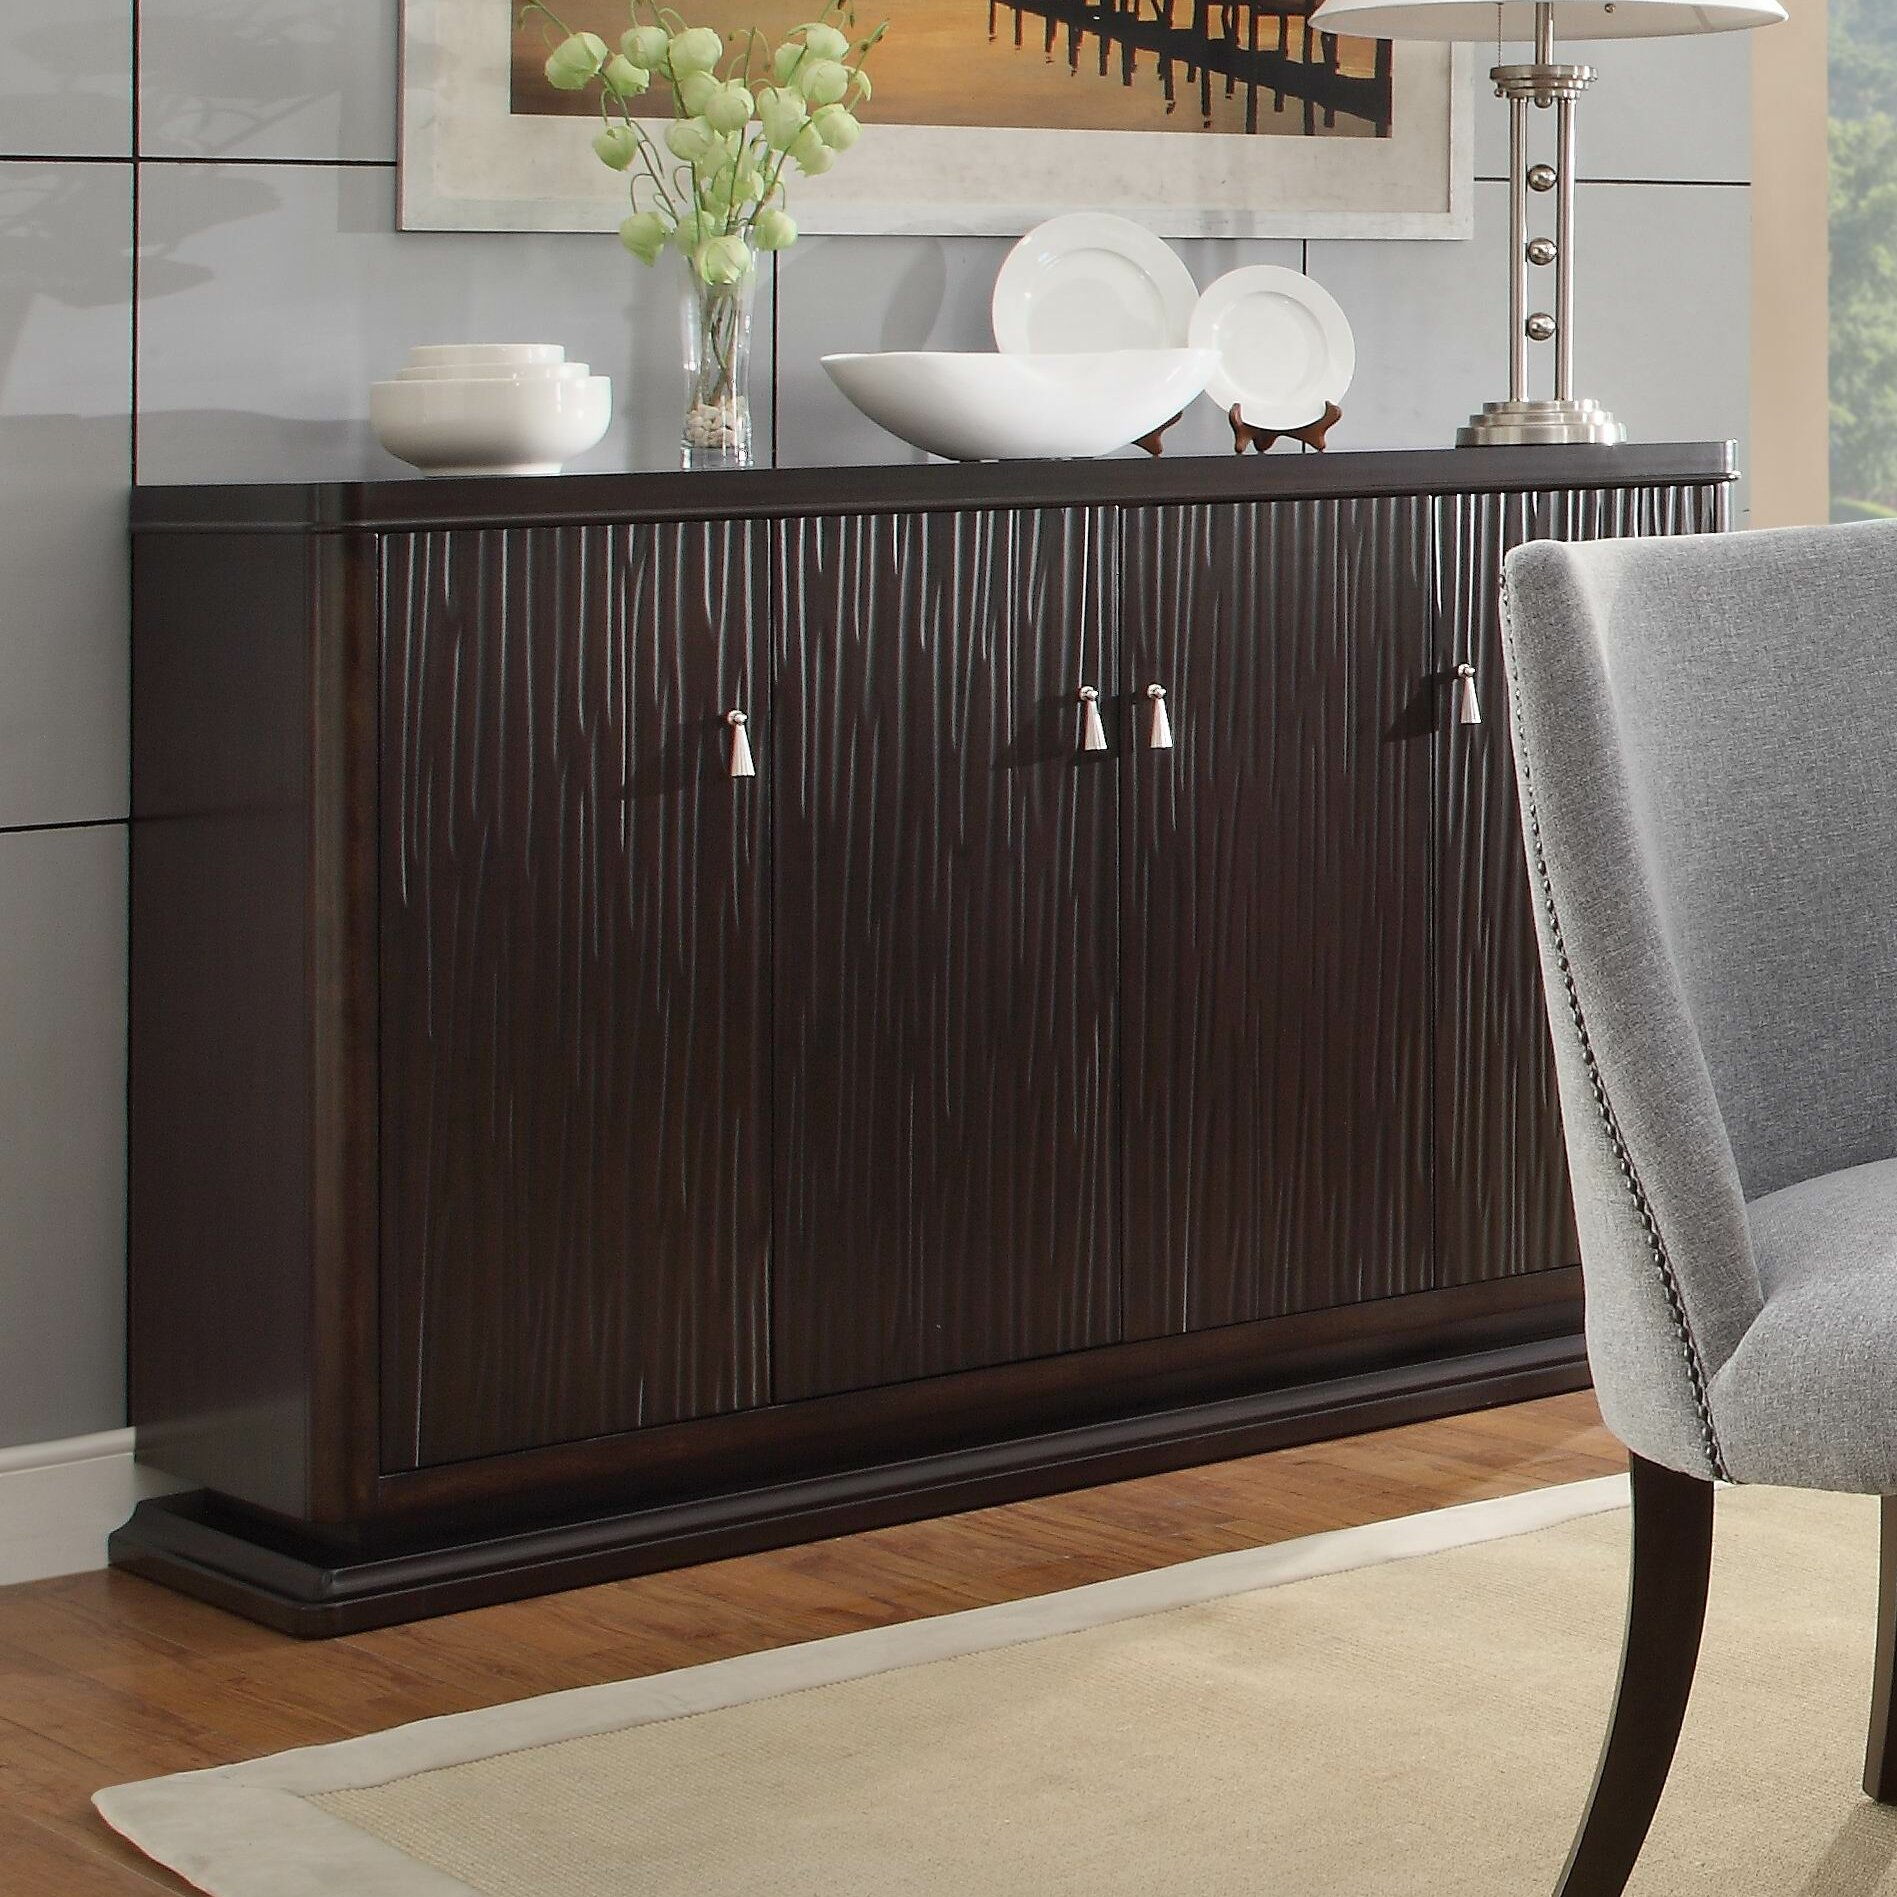 Cadogan Sideboard in Jacklyn 3 Door Sideboards (Image 3 of 30)